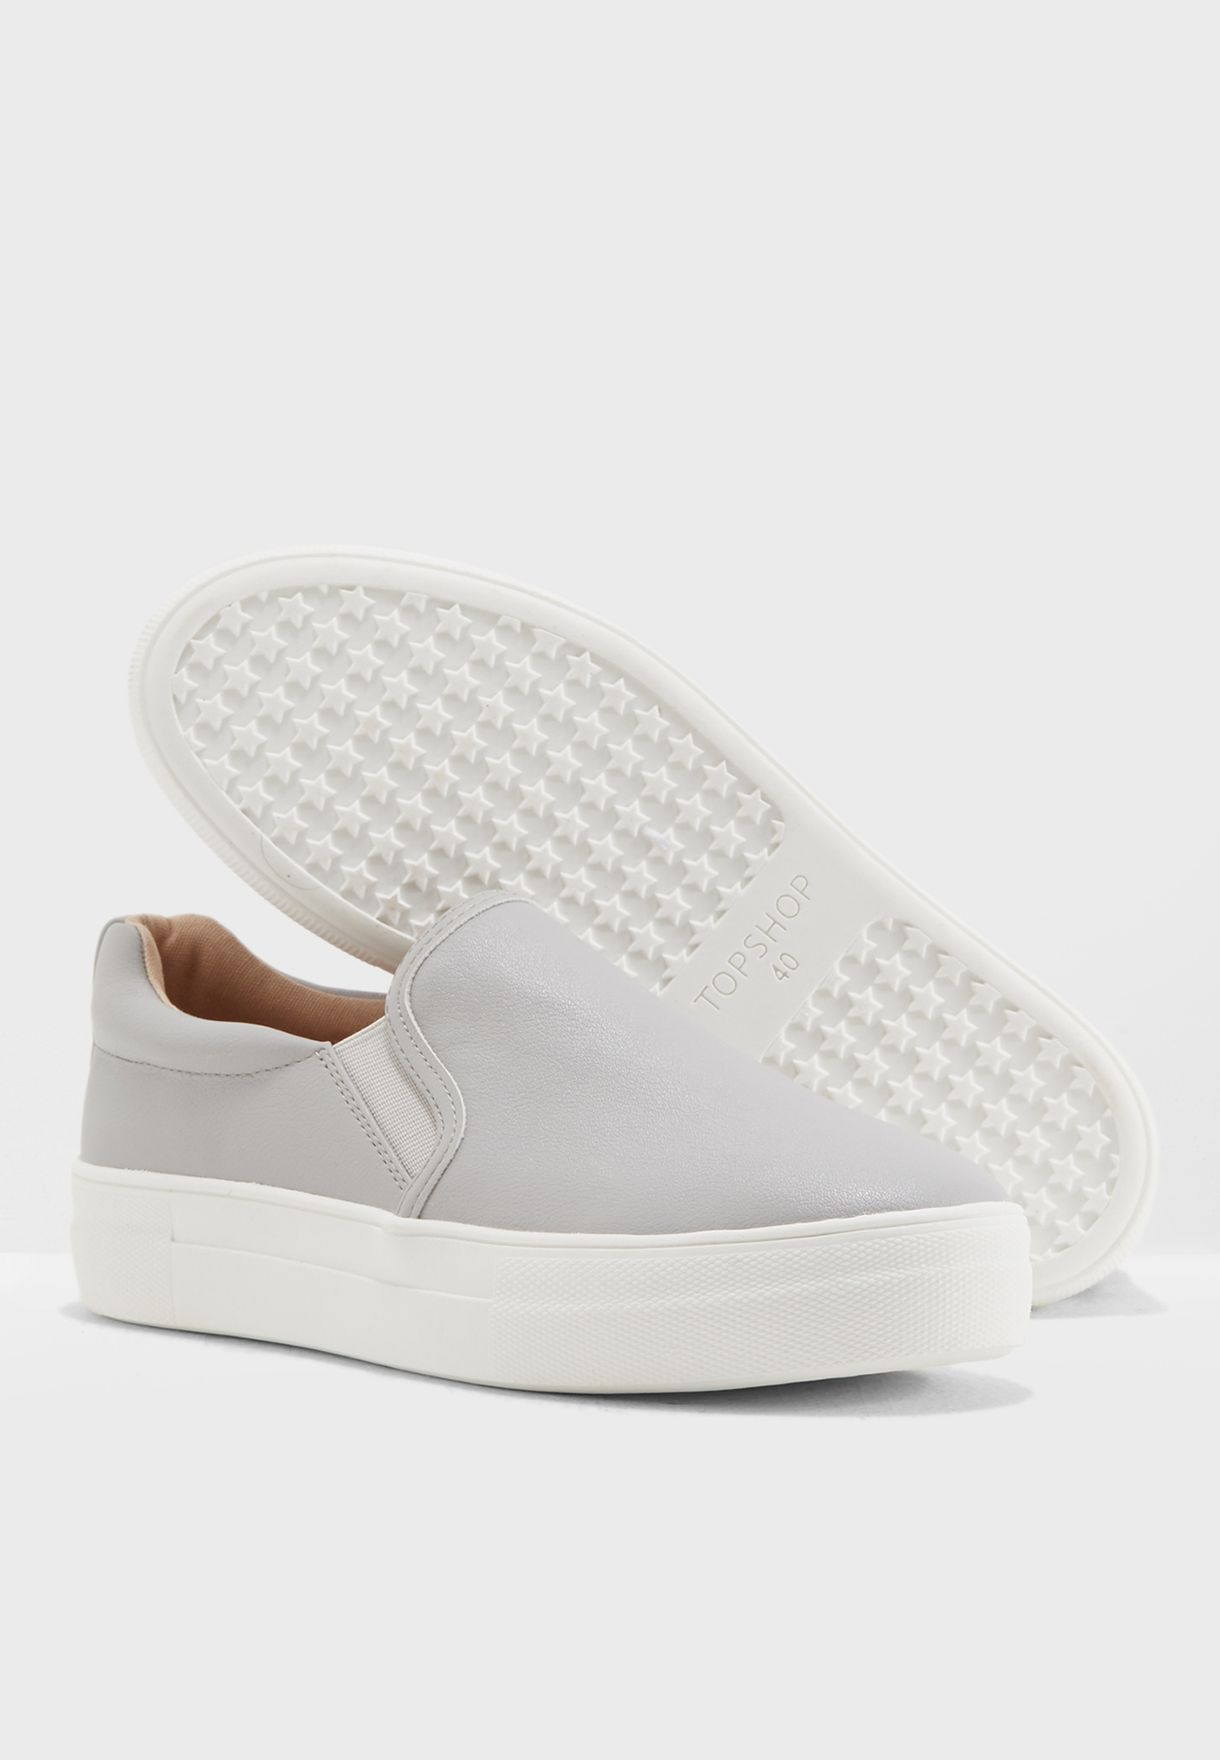 40899638f7a6 Shop Topshop grey Tina Flatform Slip On Trainers 42T03NGRY for Women ...